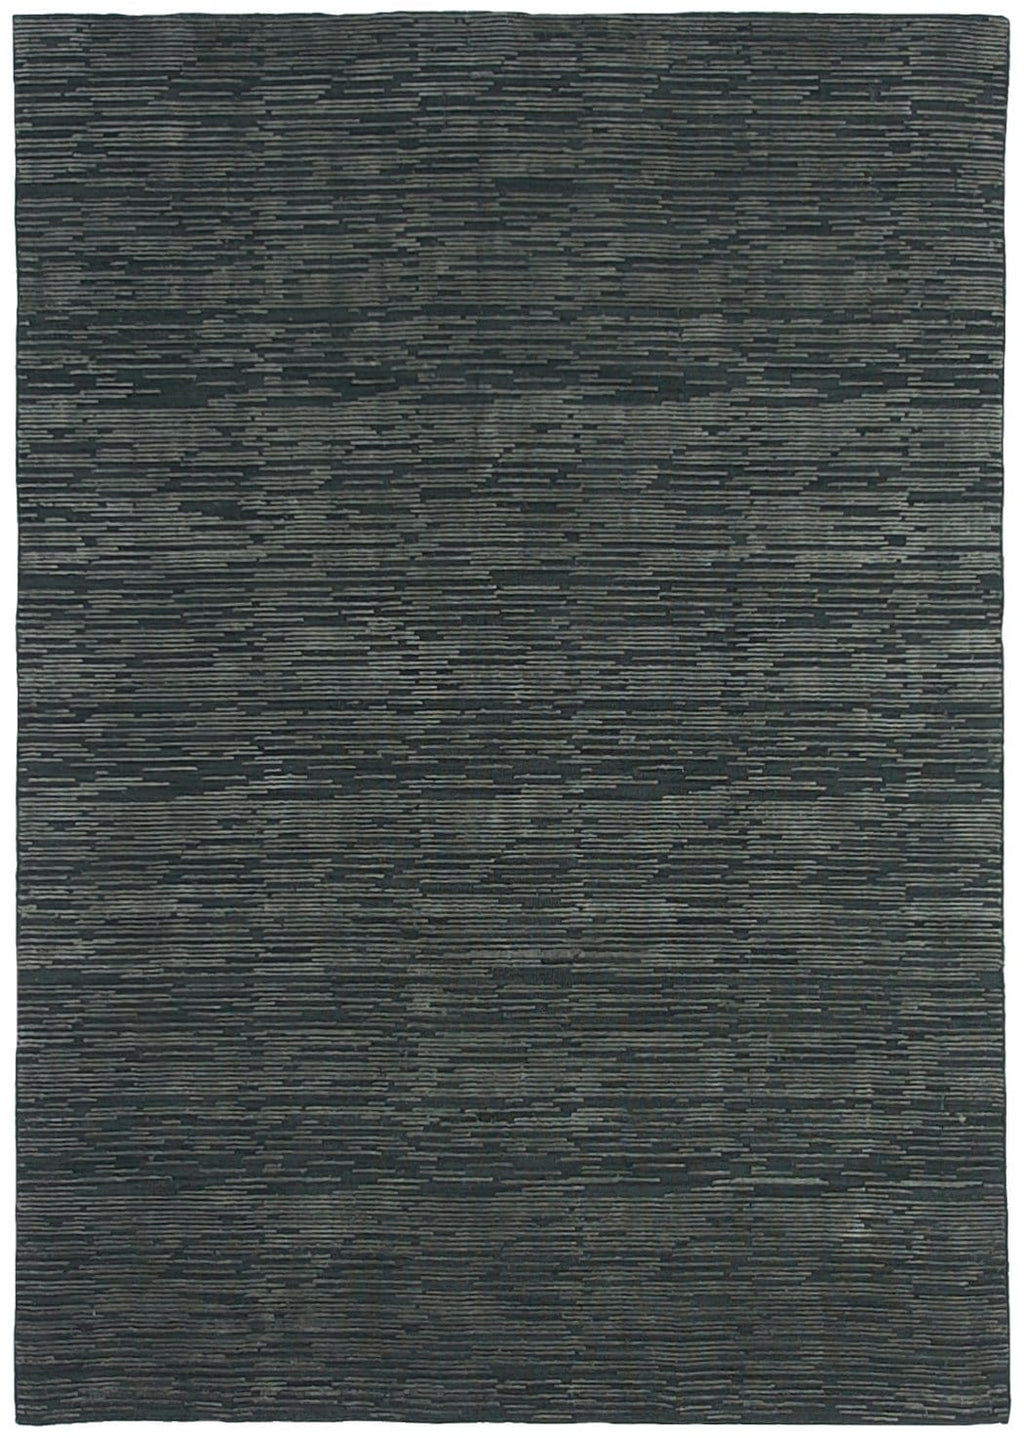 Amal Charcoal Striped Wool Blend Rug